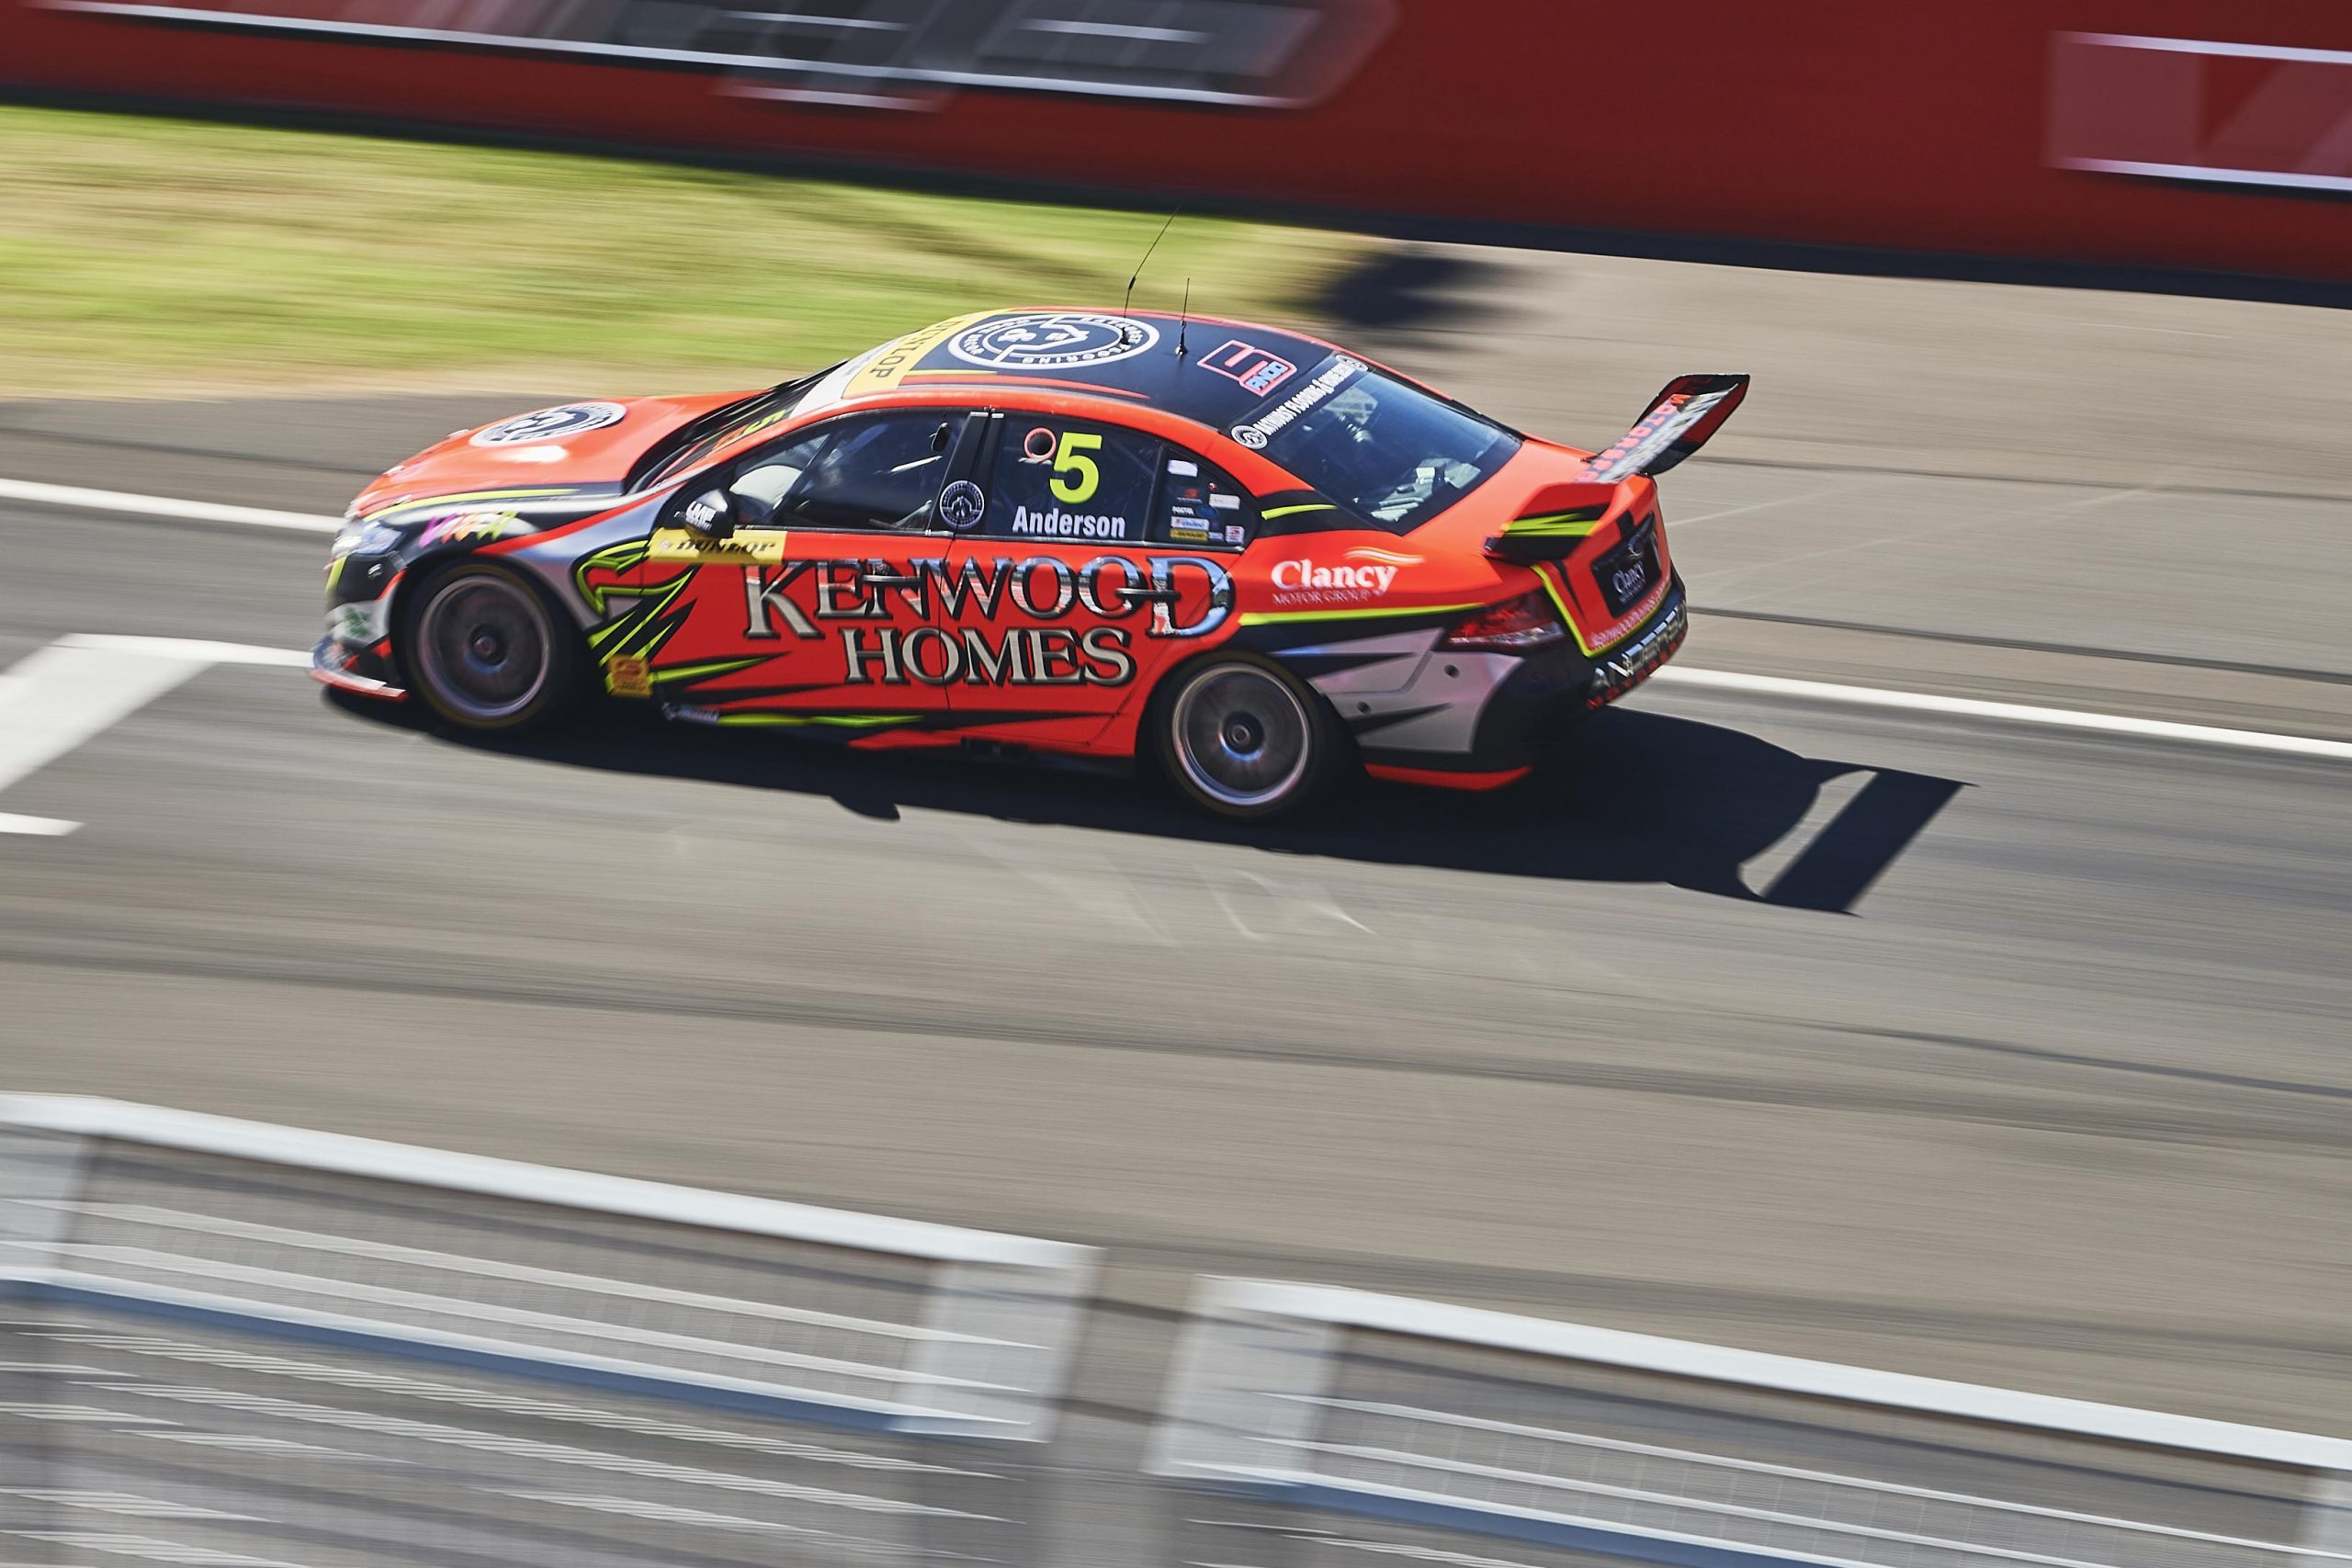 Anderson snares last-lap Bathurst win as McCorkindale takes Round 1